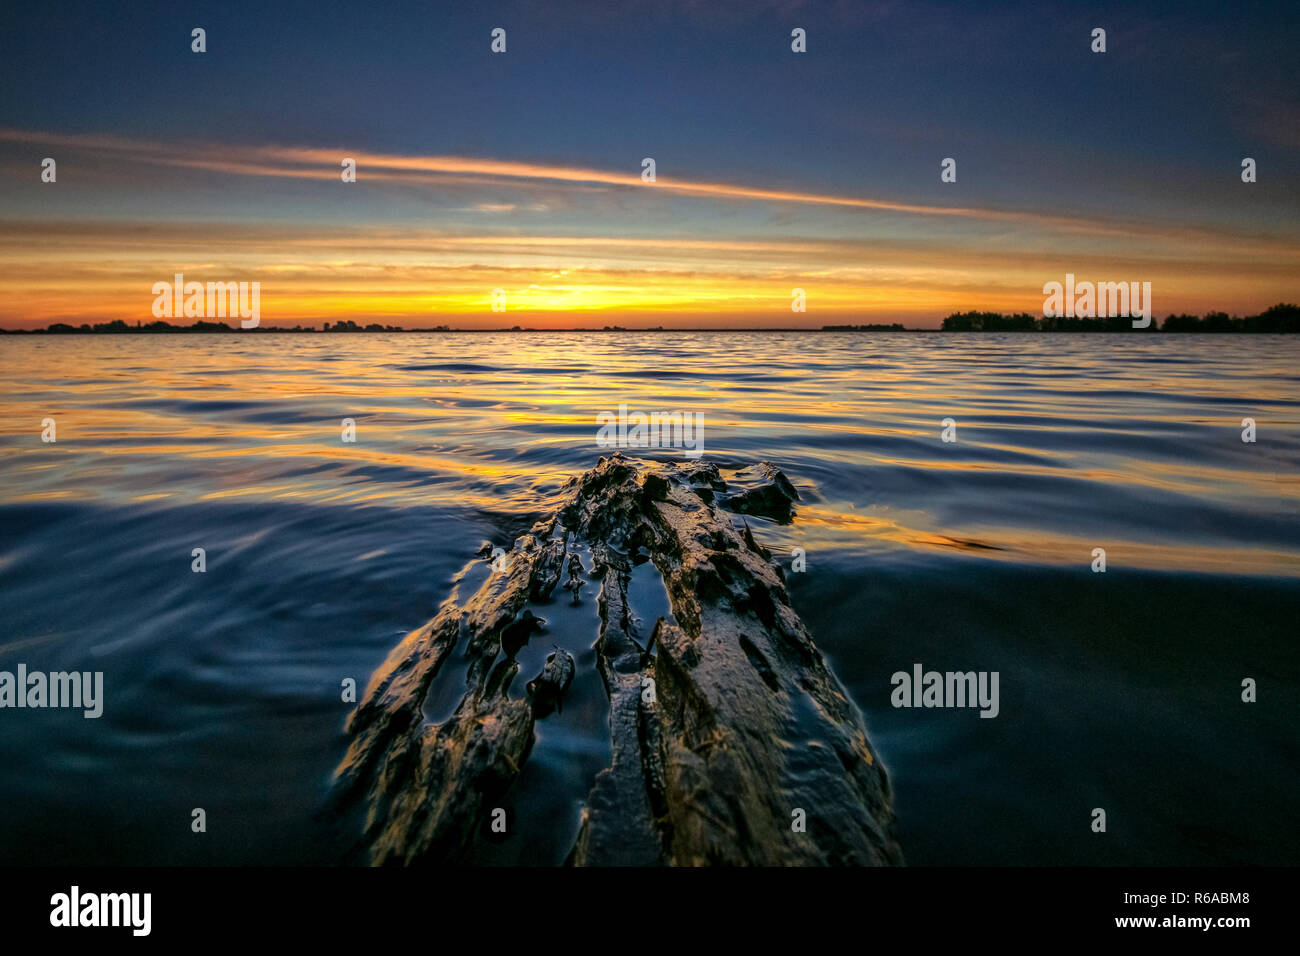 Sunset along the edge lakes of Flevoland. Floating piece of driftwood washed up on the coast with a view over the flat Dutch Polder landscape. Stock Photo